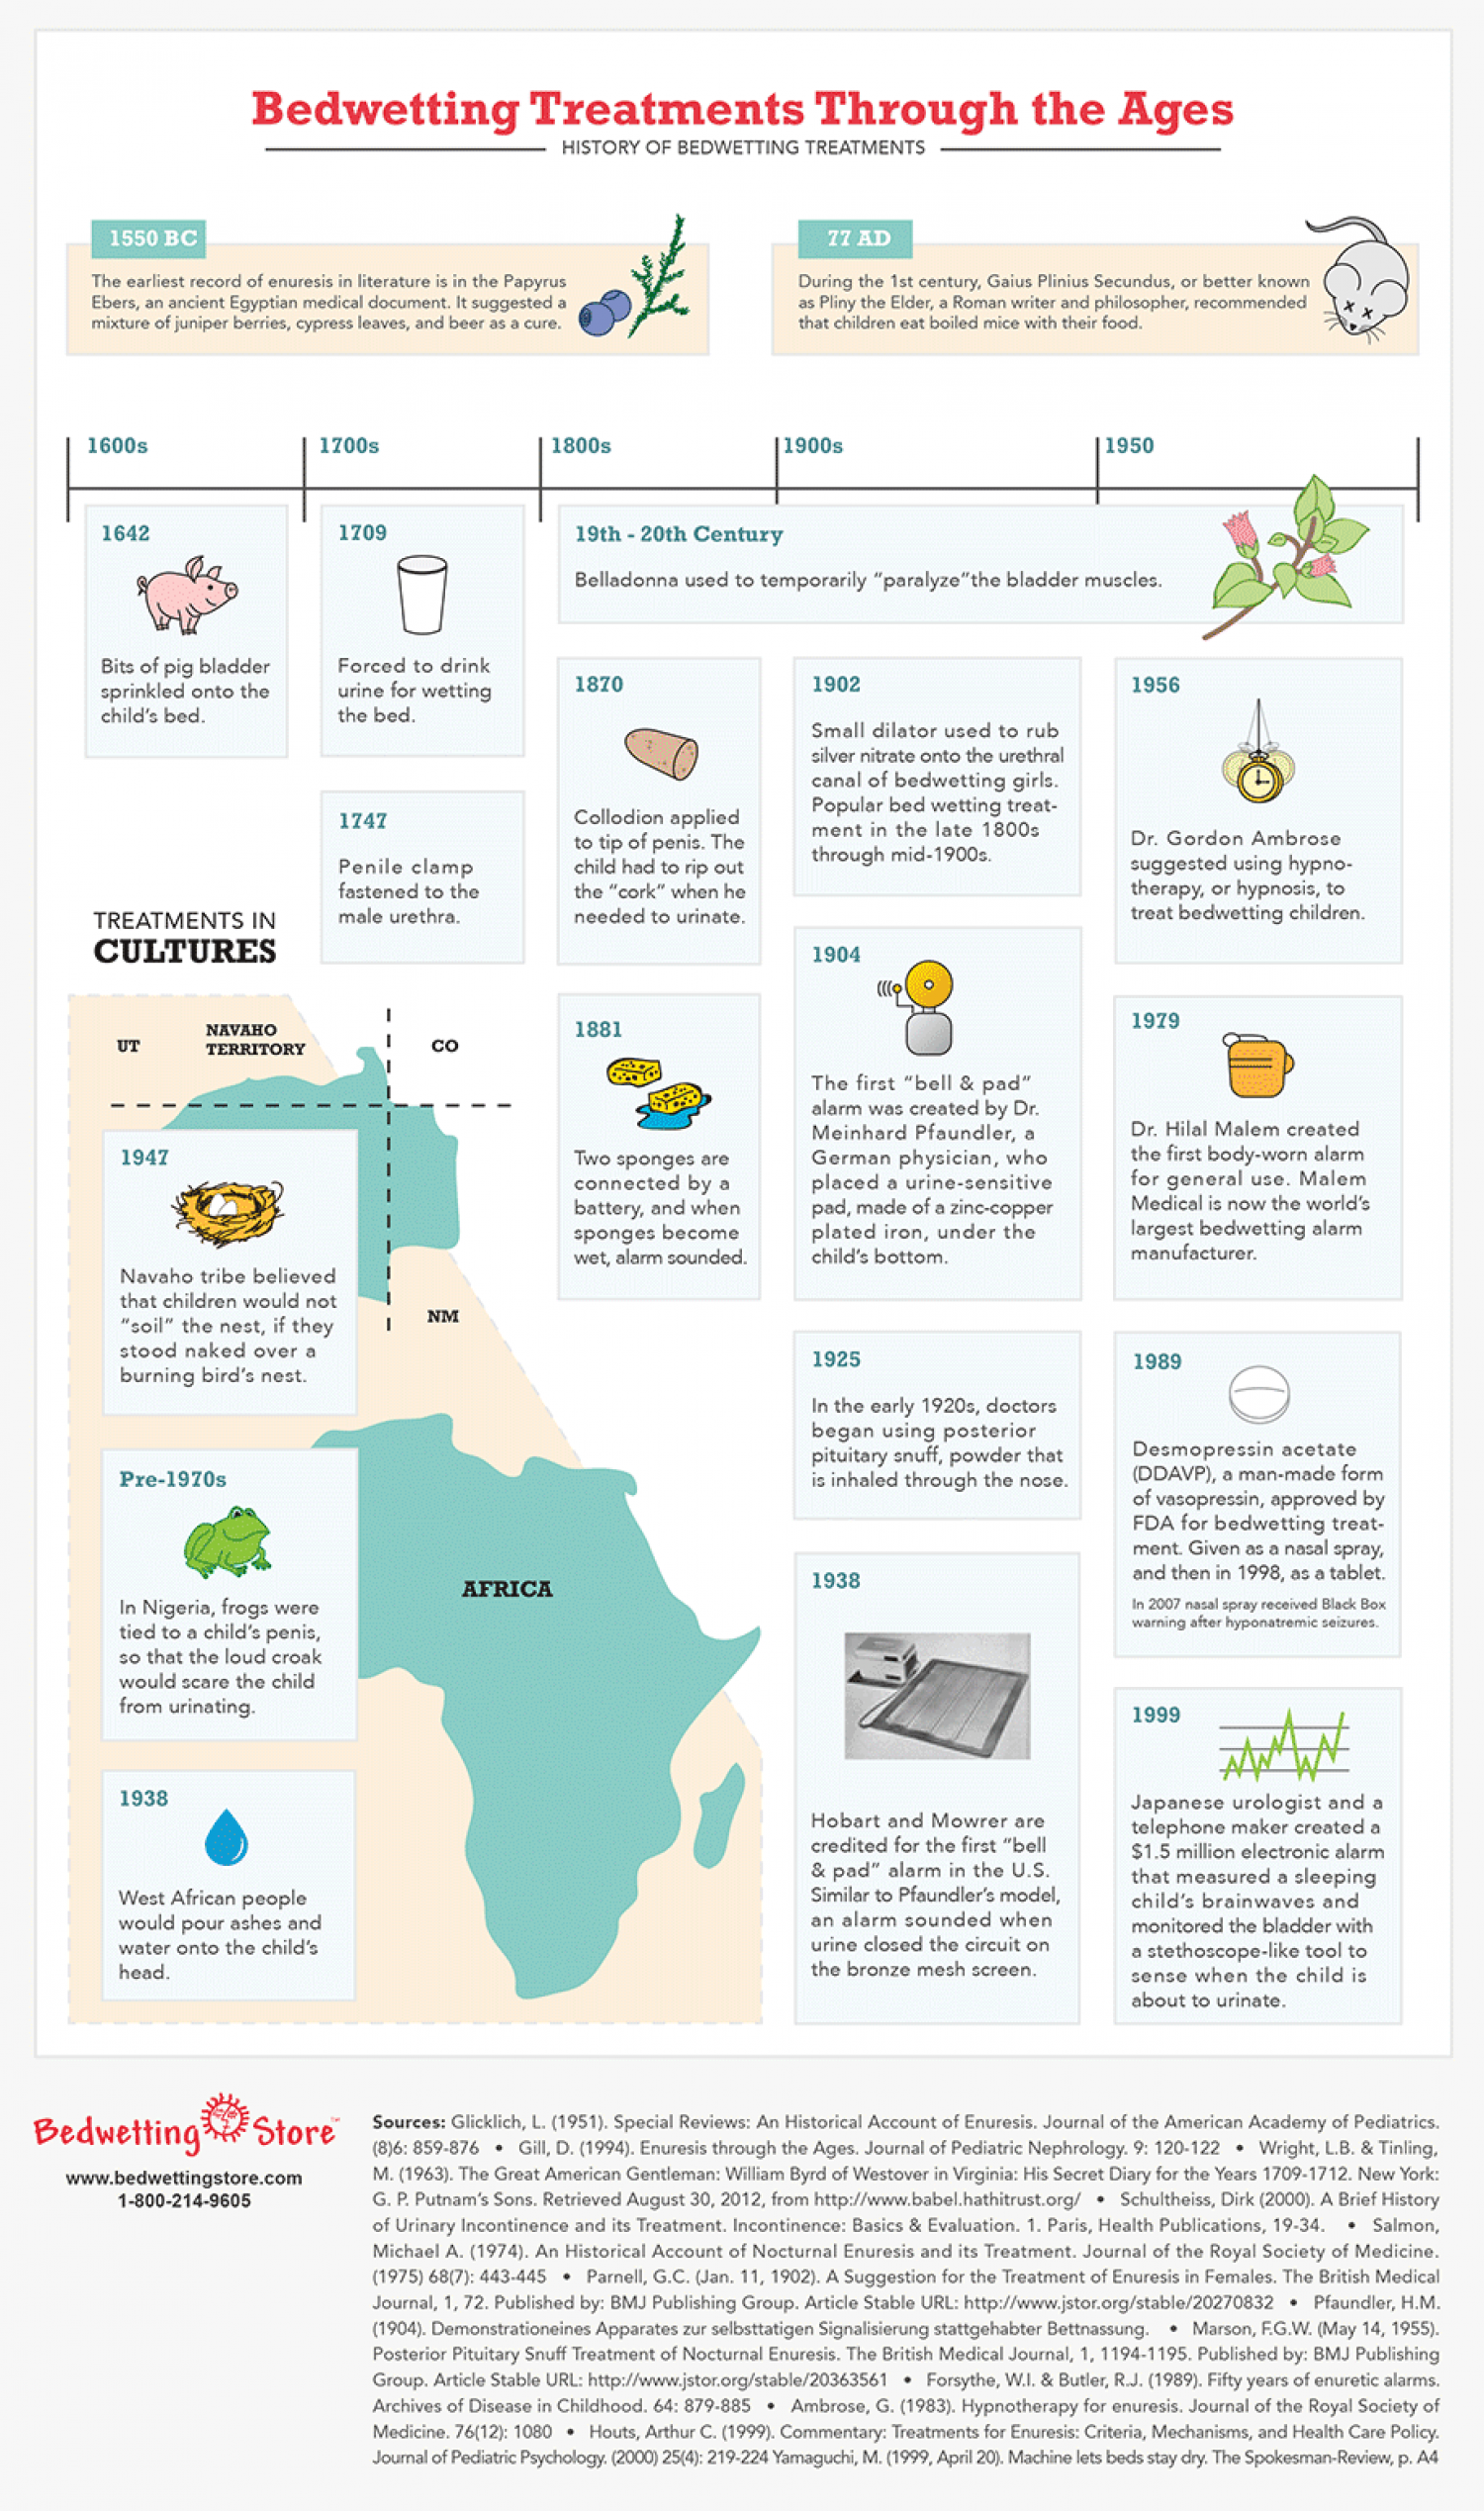 Bedwetting Treatments Through the Ages Infographic